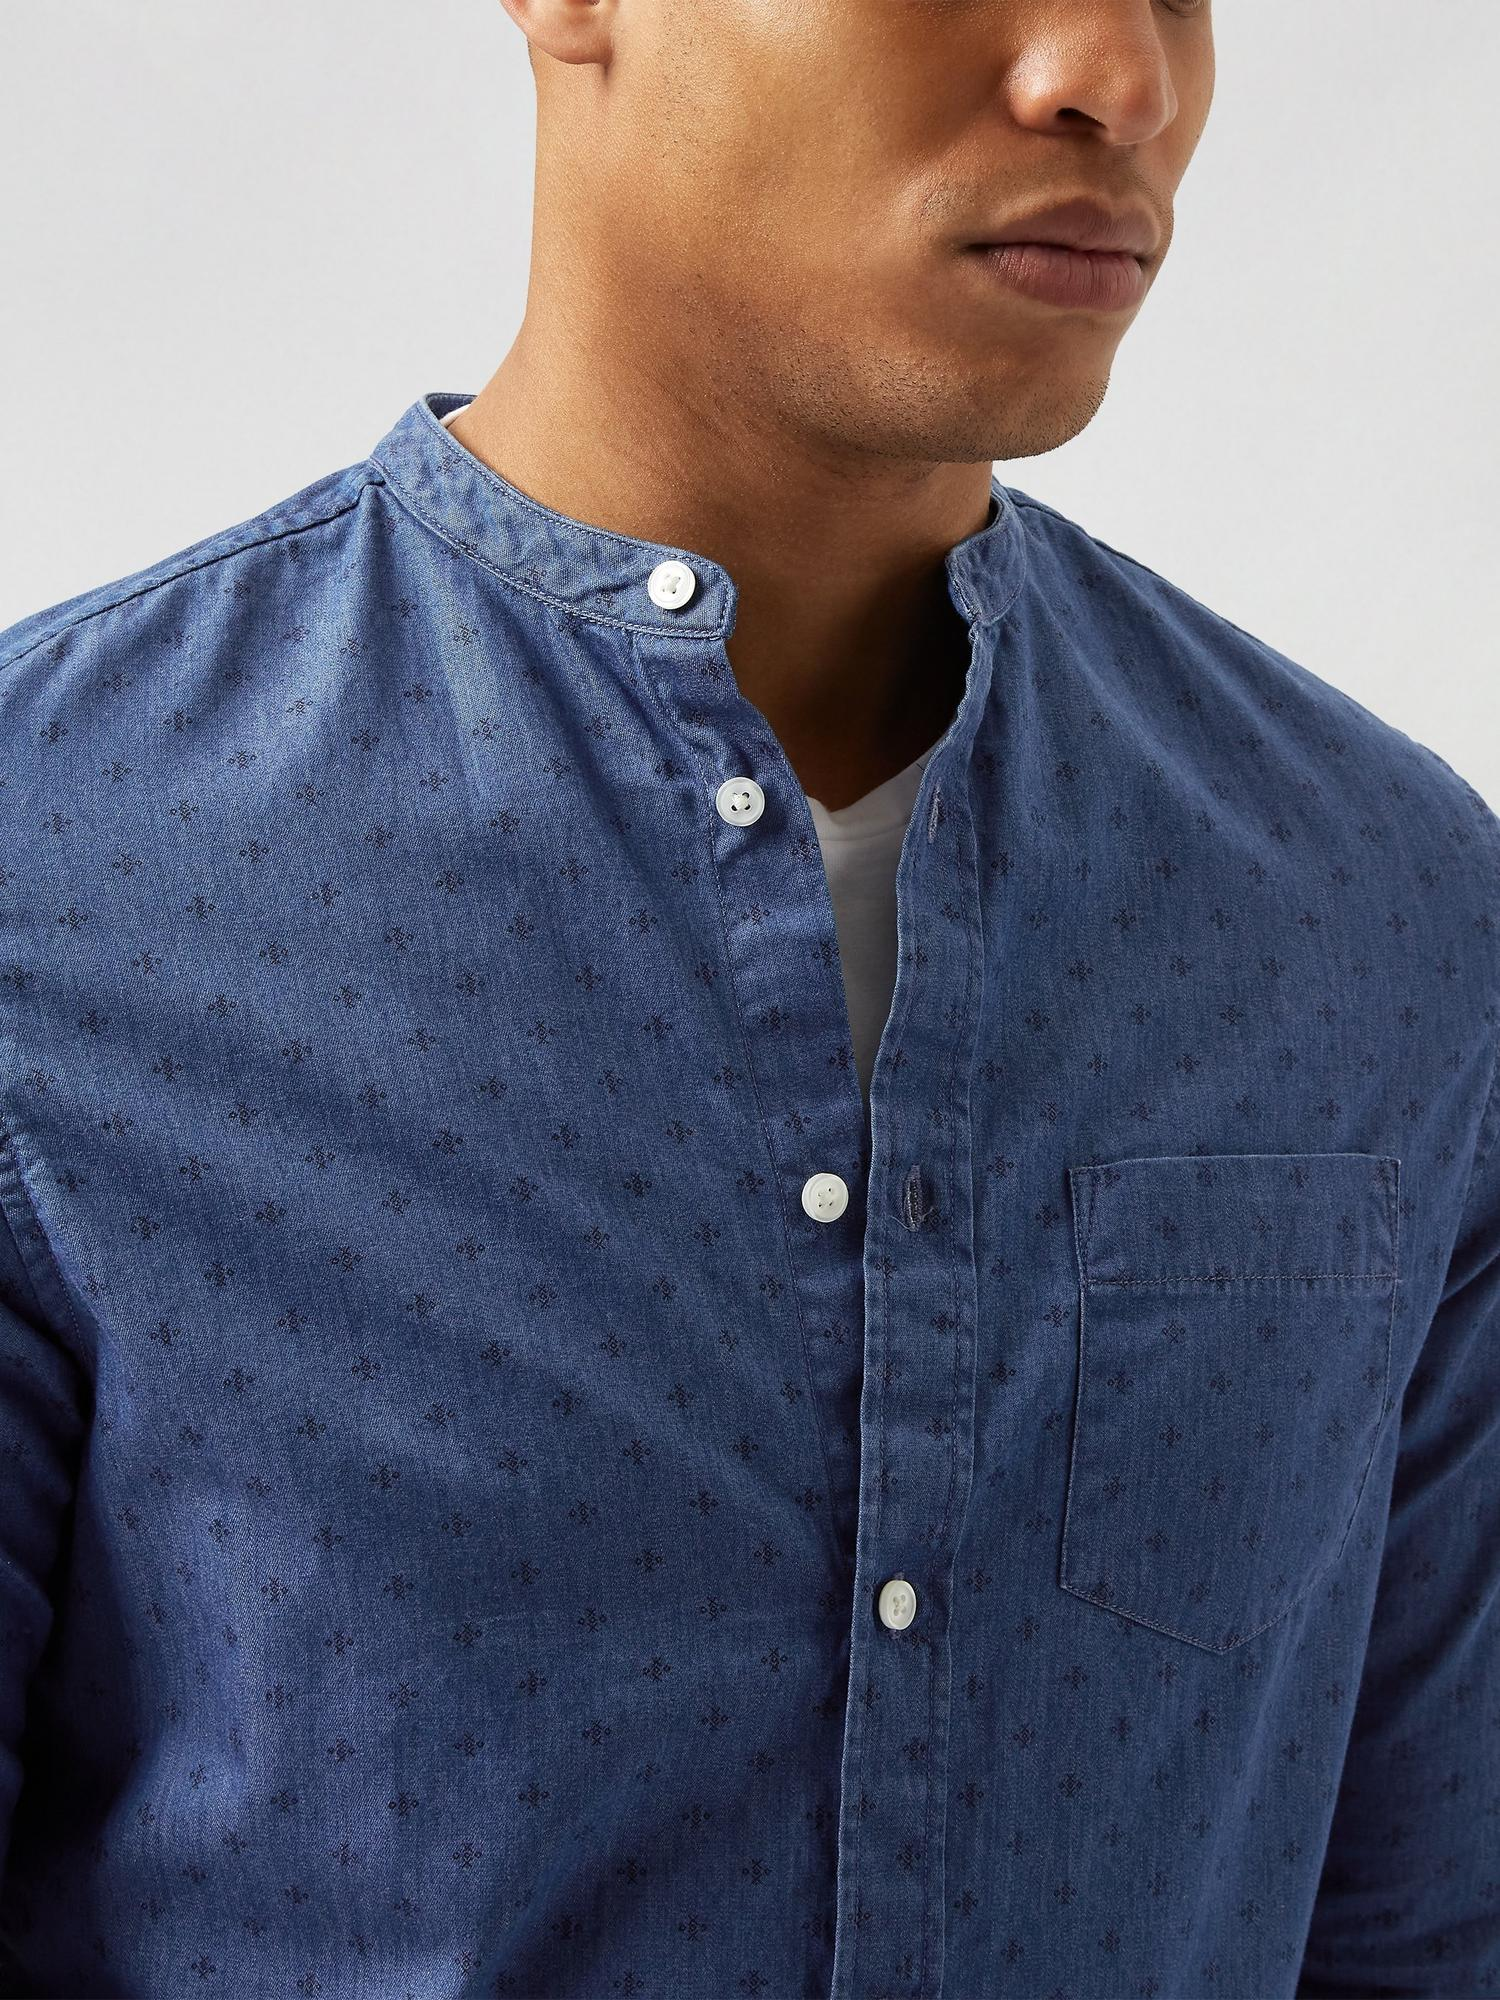 340 Denim Printed Shirt image number 4